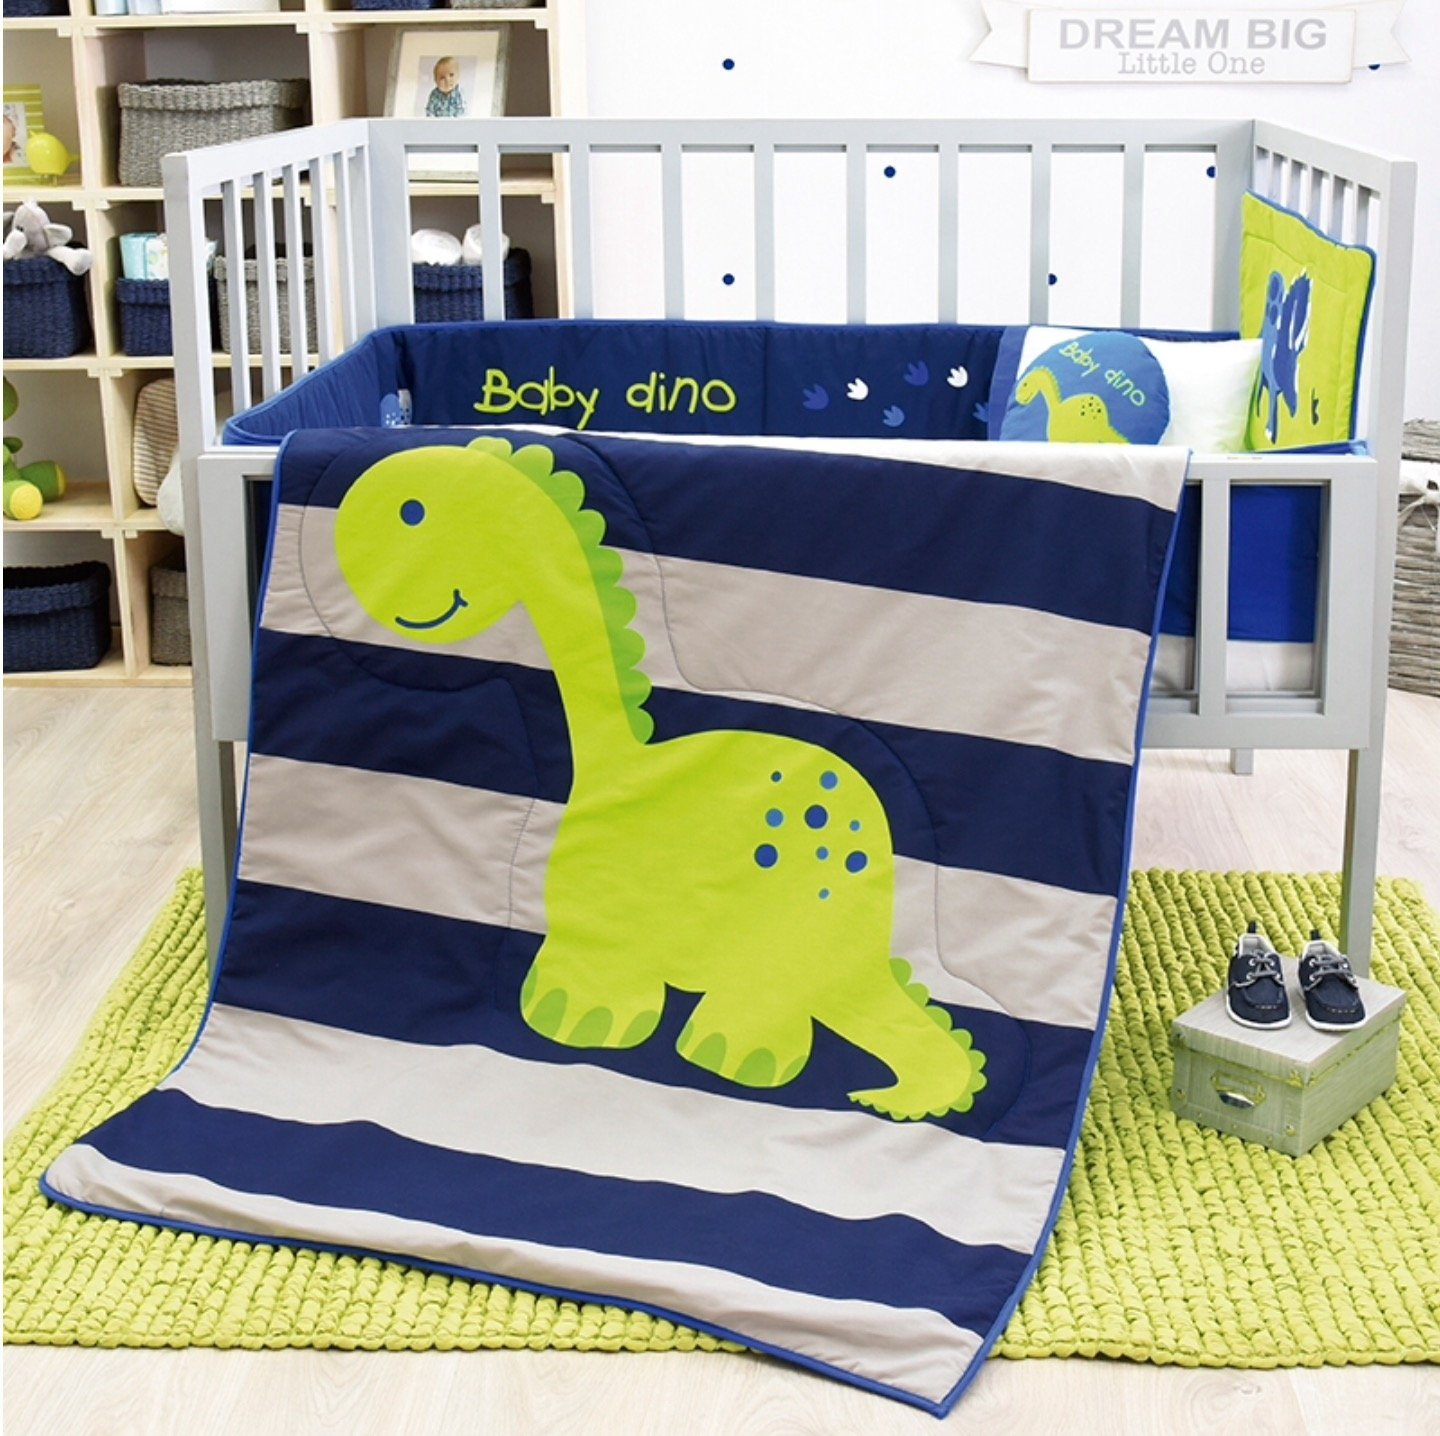 DINOSAURS CRIB BEDDING SET SHEET 6 PCS COMFORTER, BUMPER GUARD, HEAD BOARD LIMITED EDITION Vianney 200-1